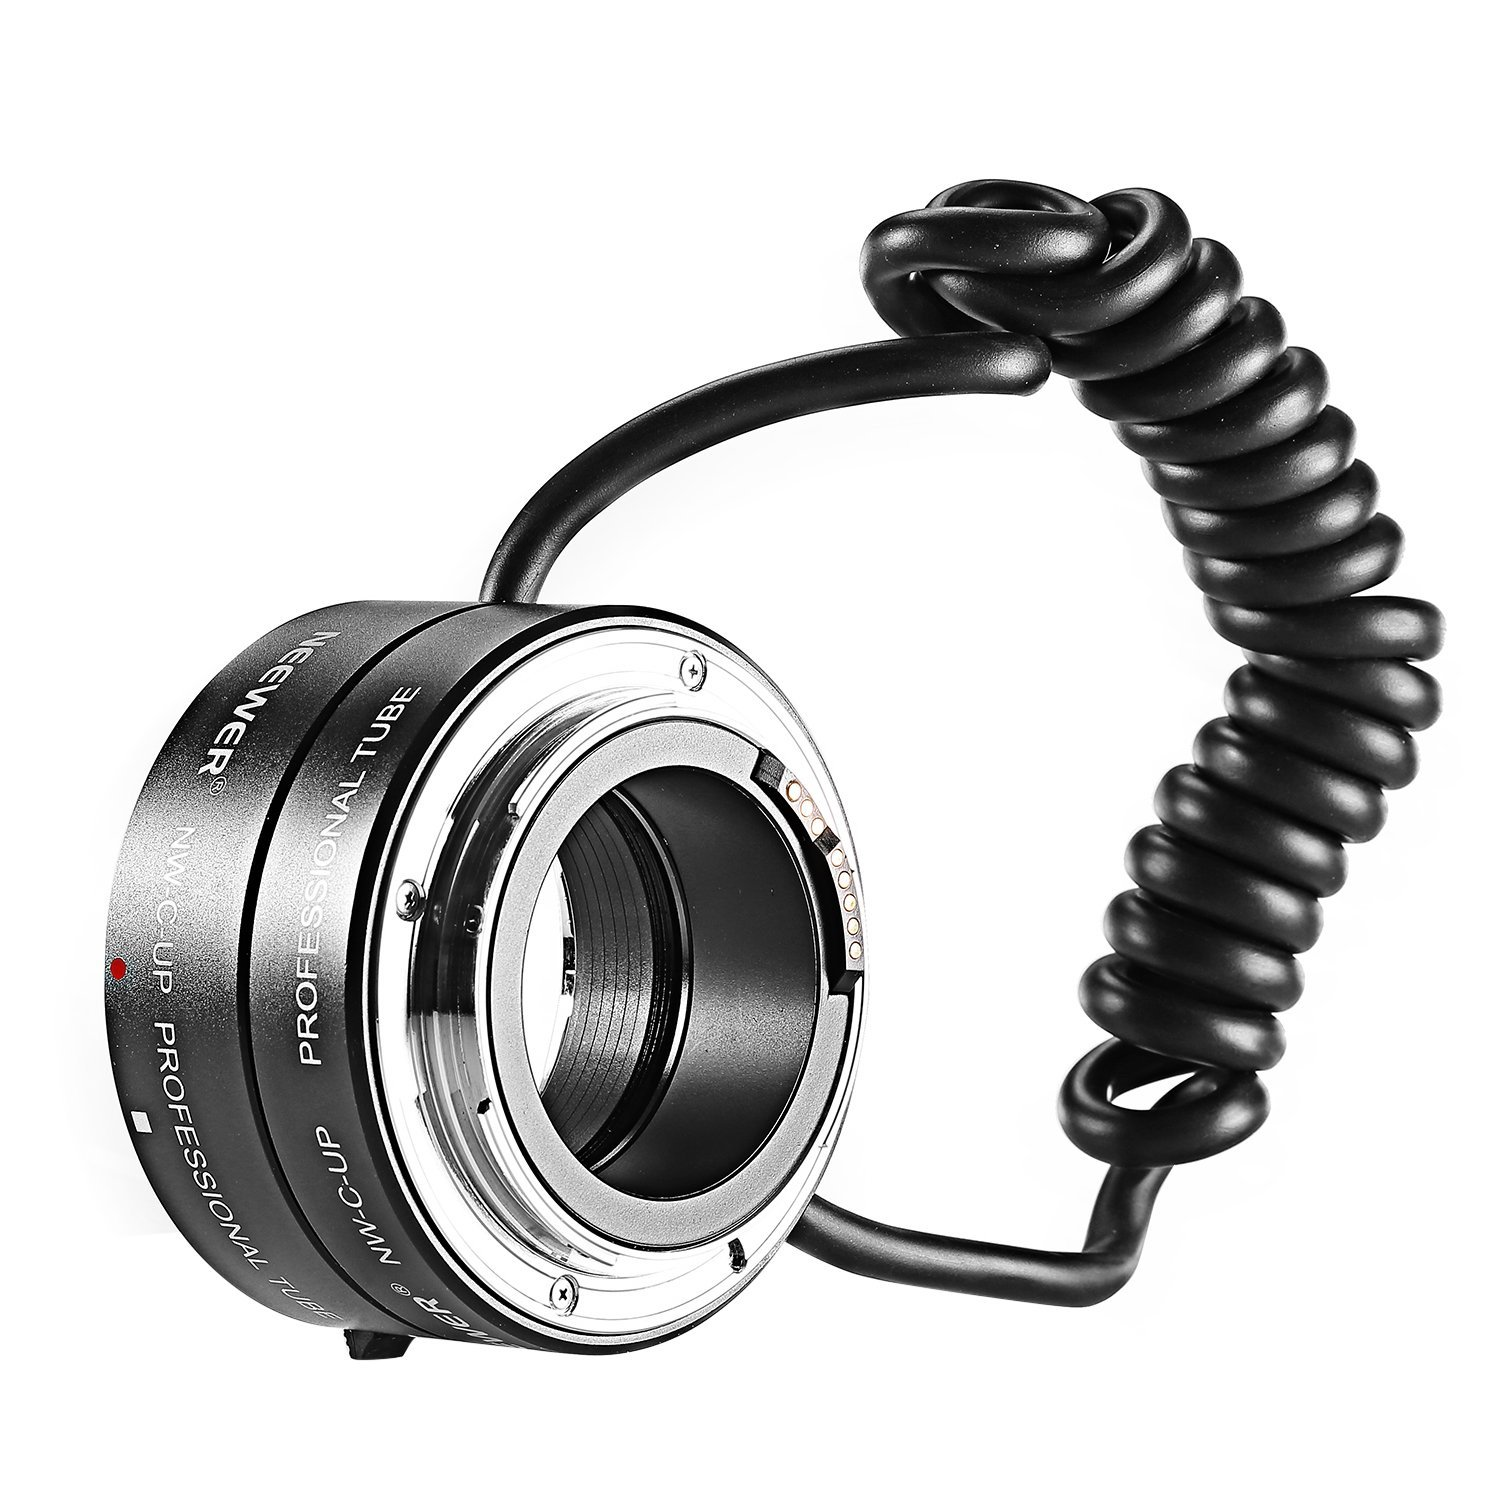 Neewer® Multifunctional Electronic Automatic AF Auto Focus Macro & Reverse Mount On Lens Extension Tube with 58mm 67mm 72mm 77mm Adapter Rings for Canon EF/EF-S Mount Lenses, Fits Canon EOS 5D Mark 3 III 5D Mark 2 II 1Ds Mark IV III II I 1D Mark III II